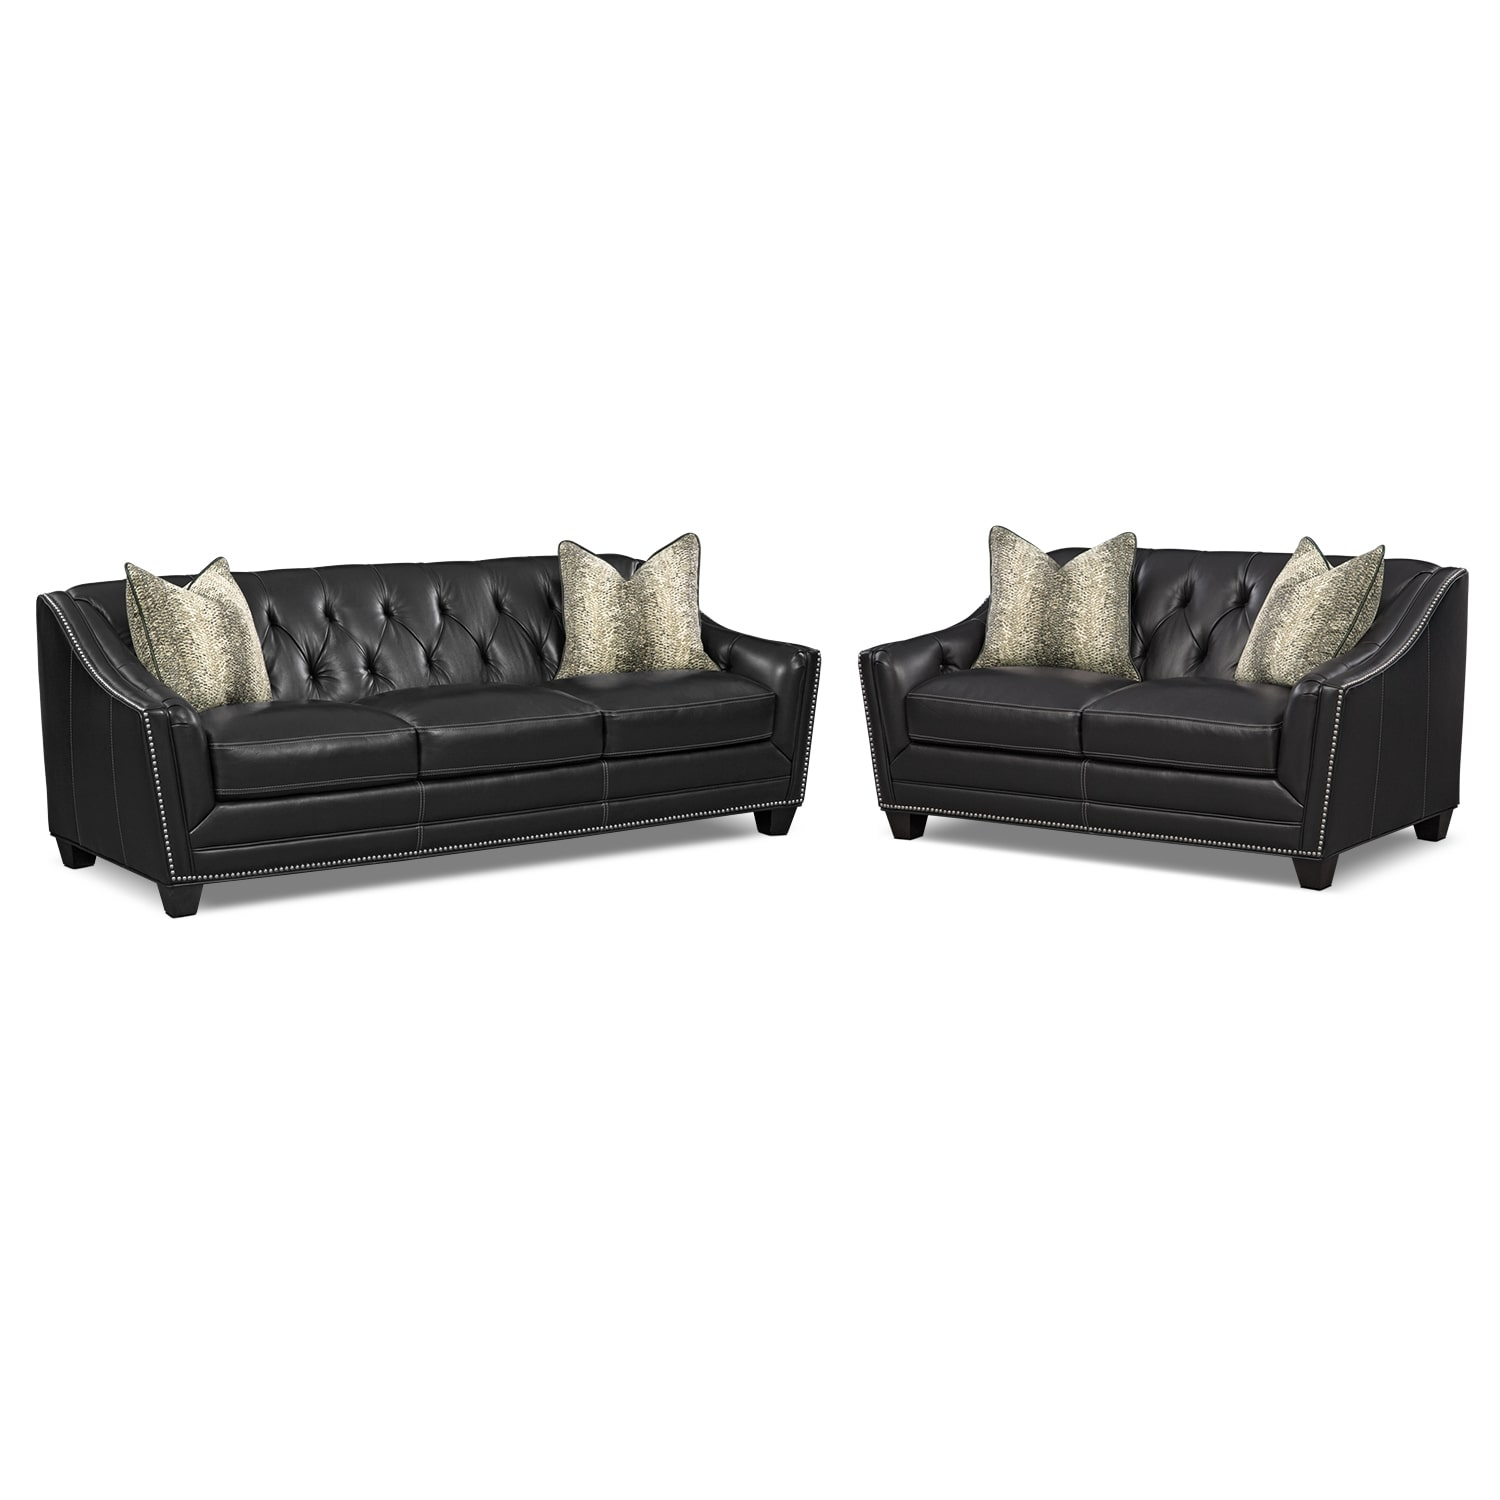 Living Room Furniture - Alexis Midnight 2 Pc. Living Room